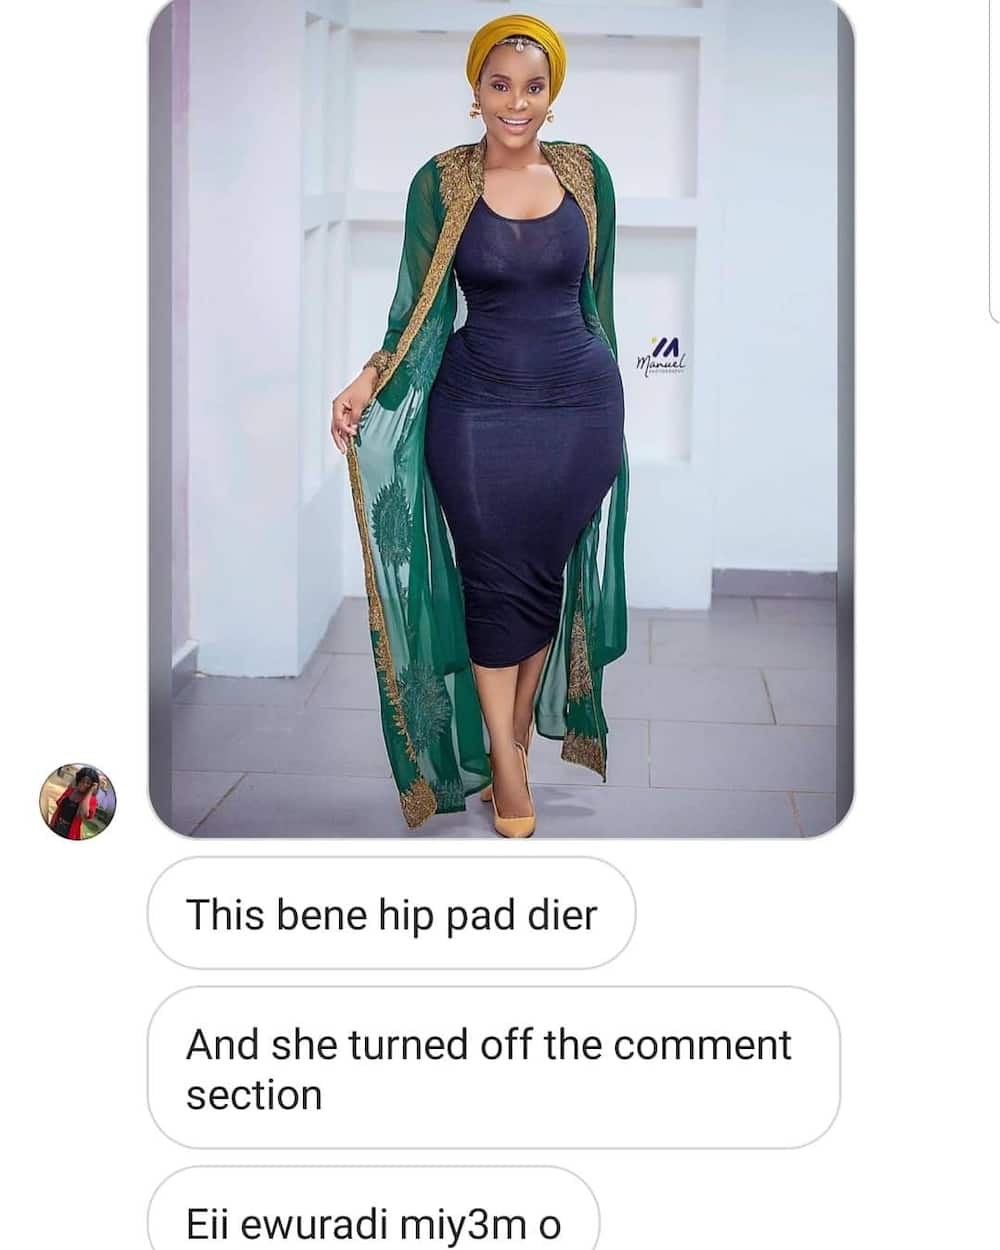 Benedicta Gafah shows her true body in latest photo and fans have praised her